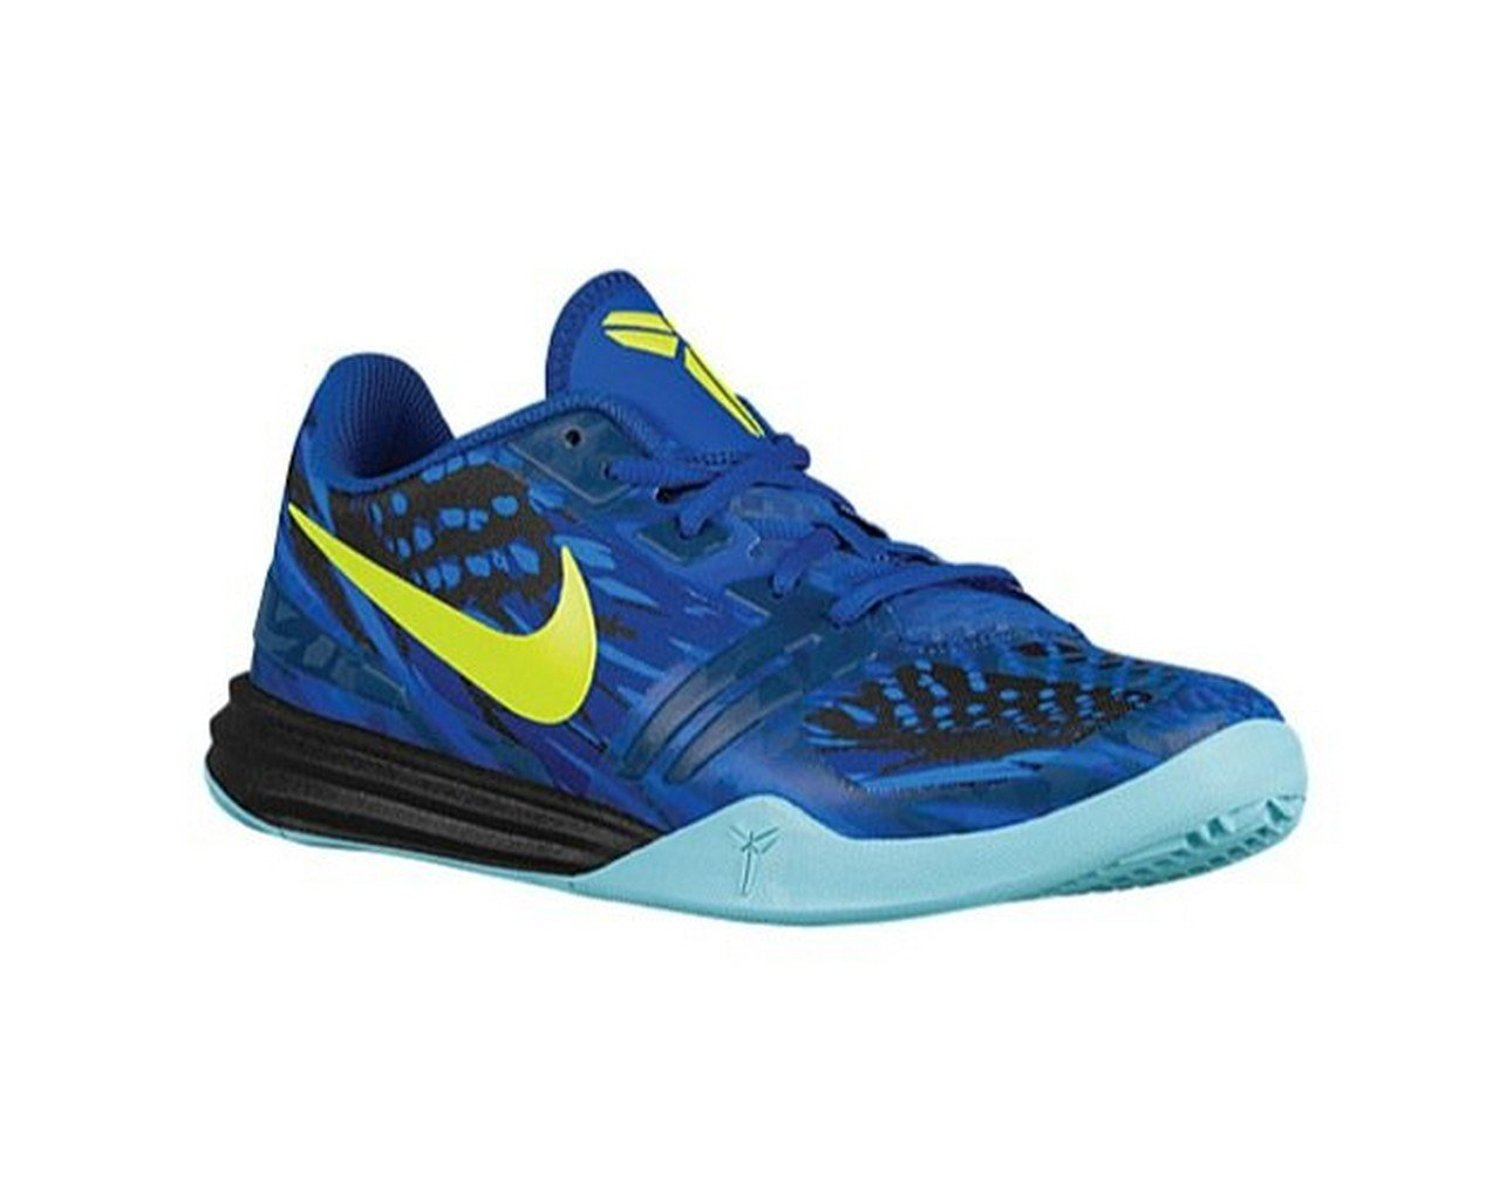 be9fc8a6946 Buy Nike Kb Mentality Sz 14 Mens Basketball Shoes Blue New In Box in ...